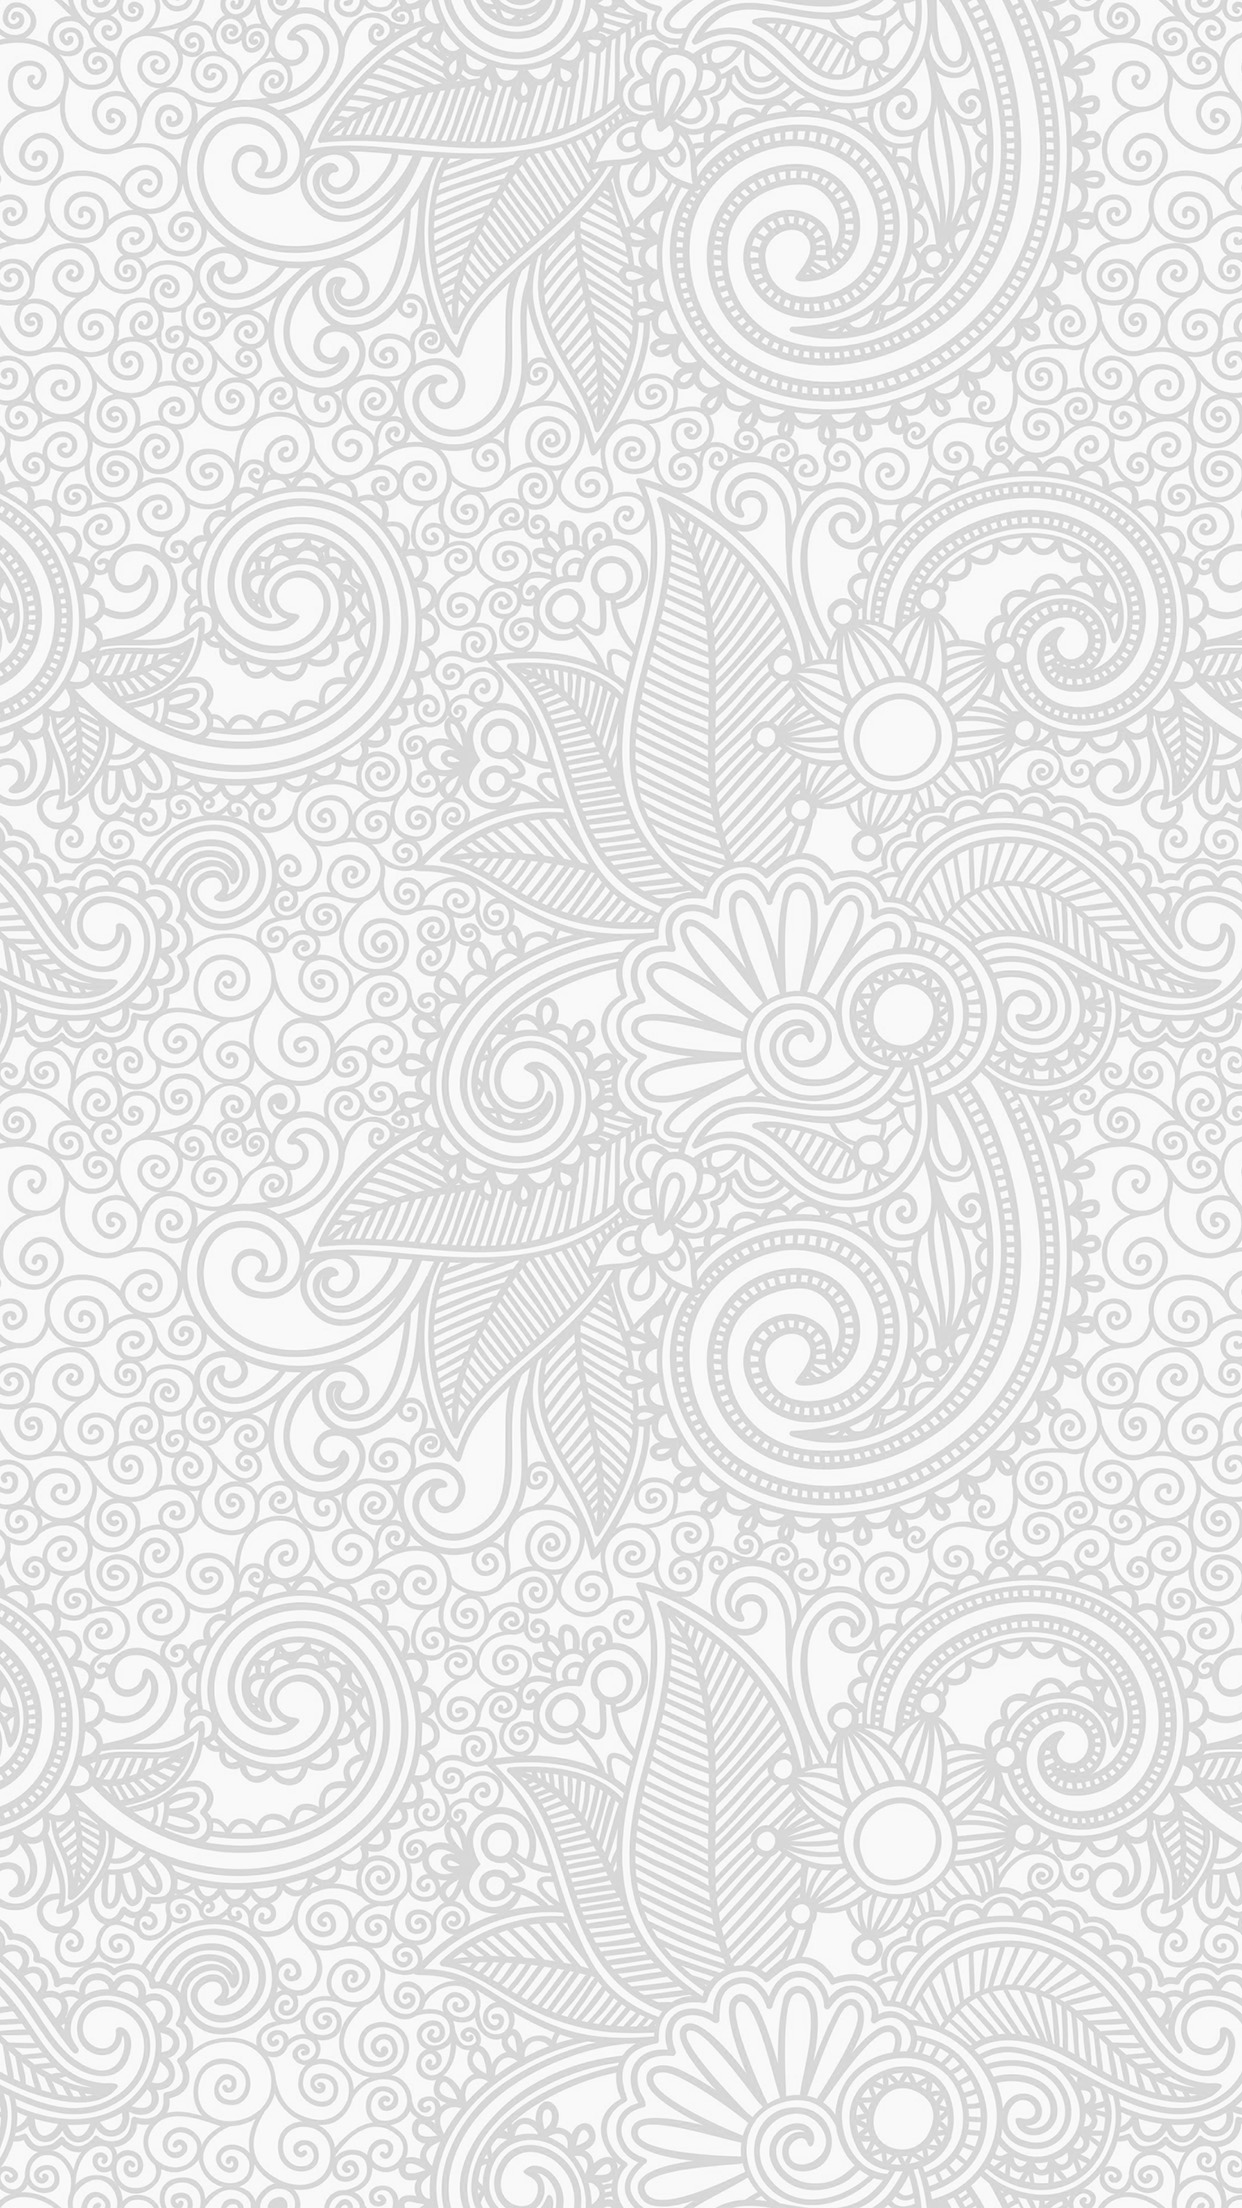 Iphone7papers Vk30 Wallpaper Design Flower Line White Bw Pattern